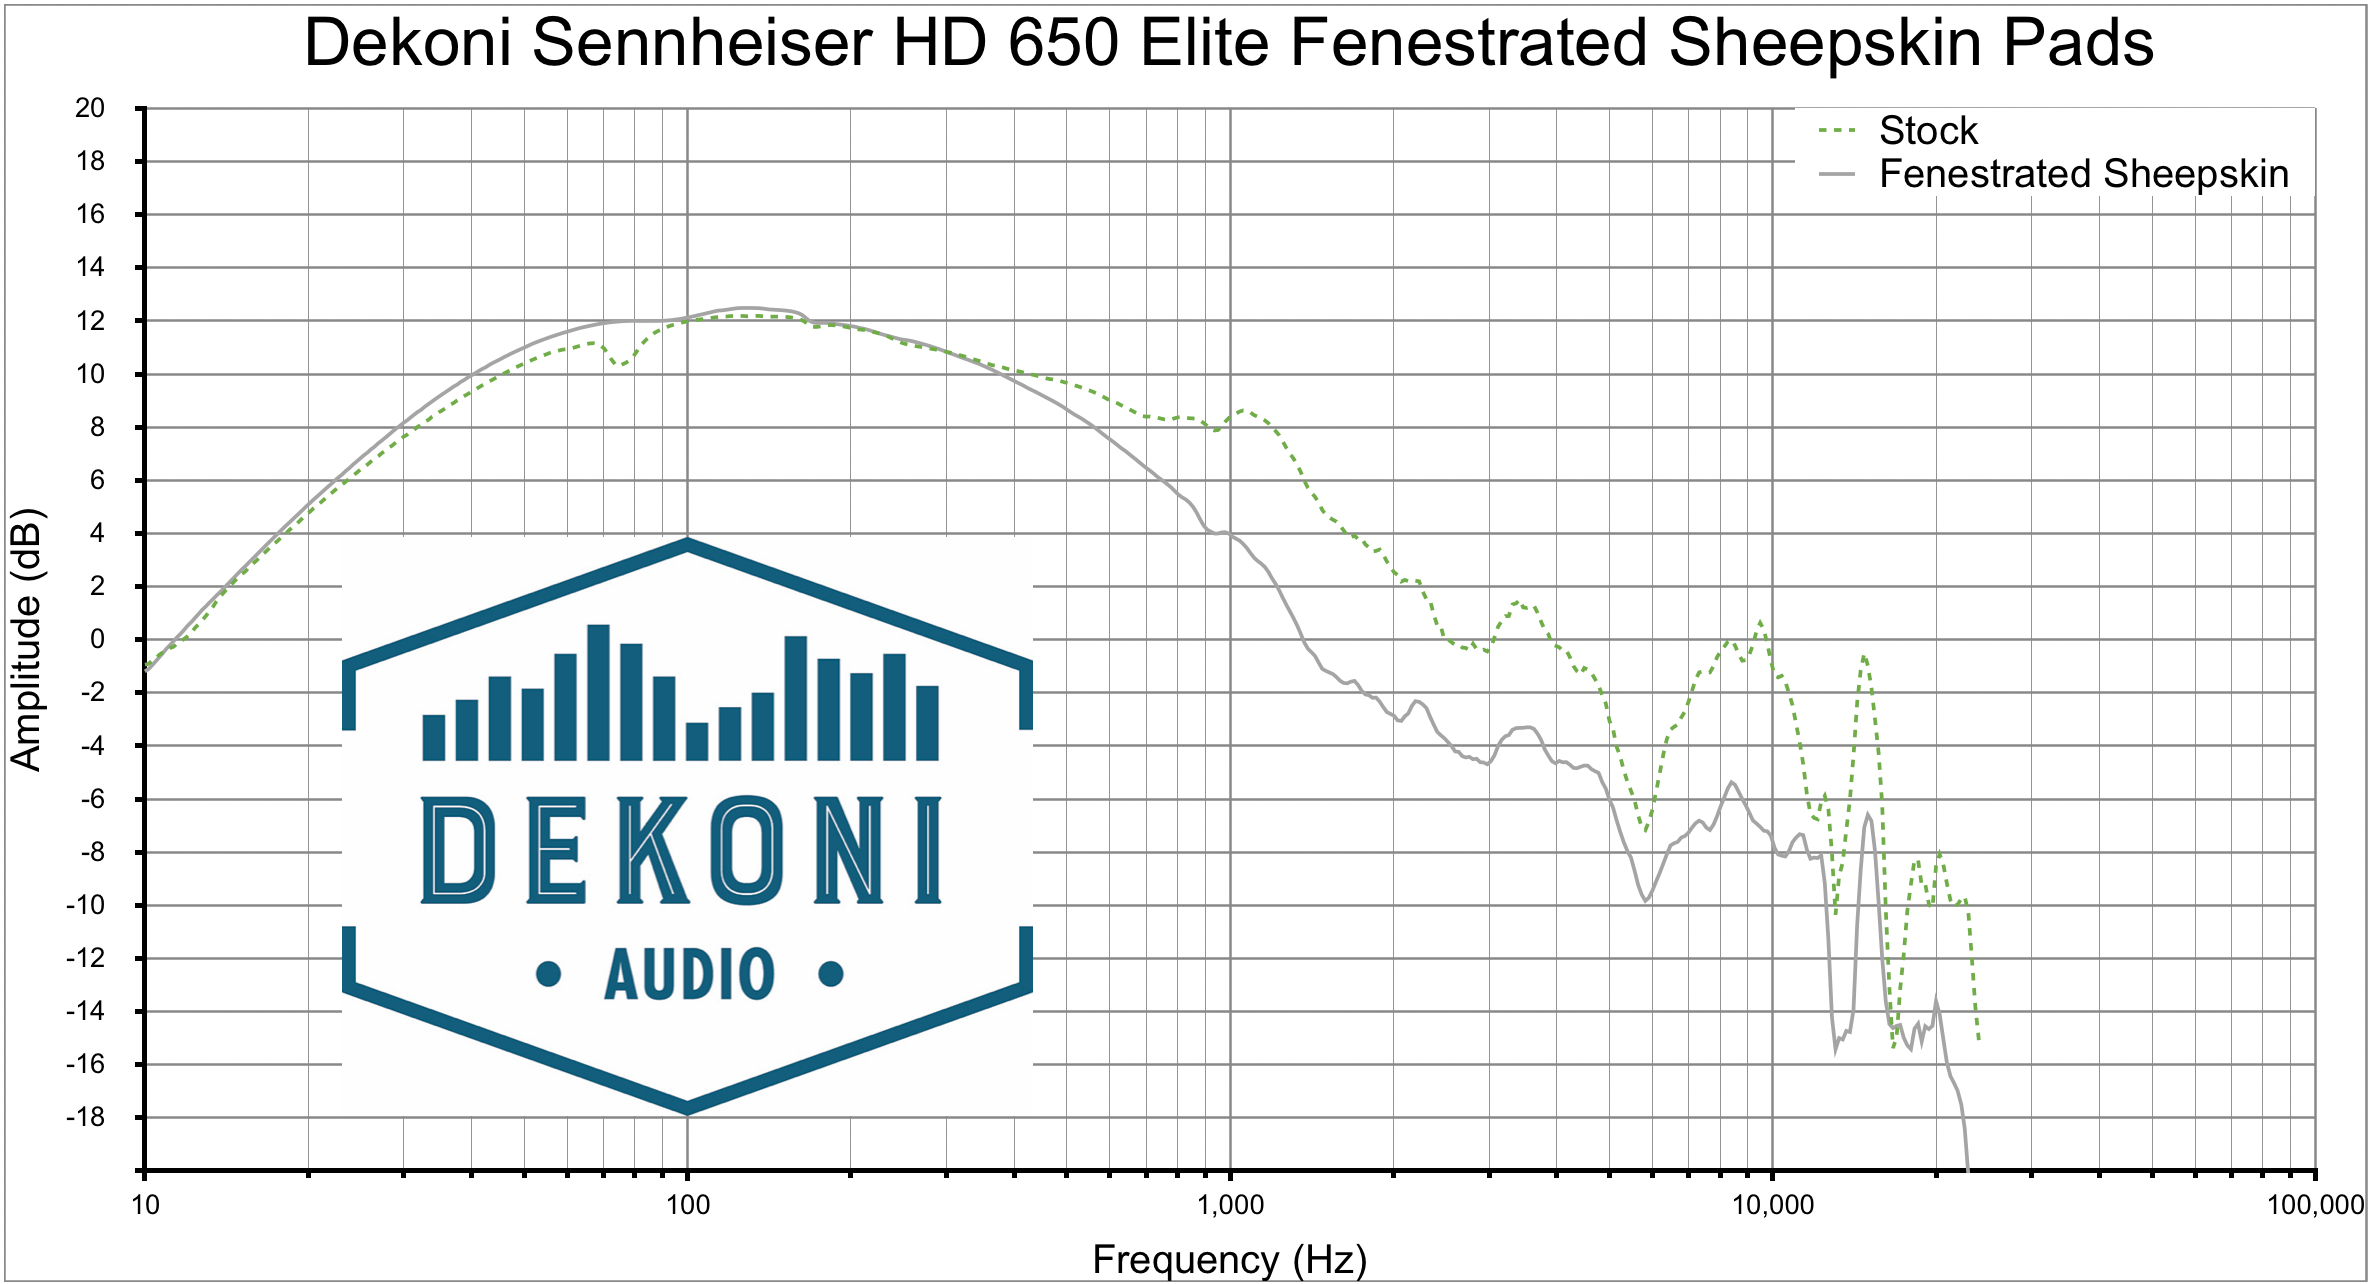 Dekoni HD 650 FnSk Graph